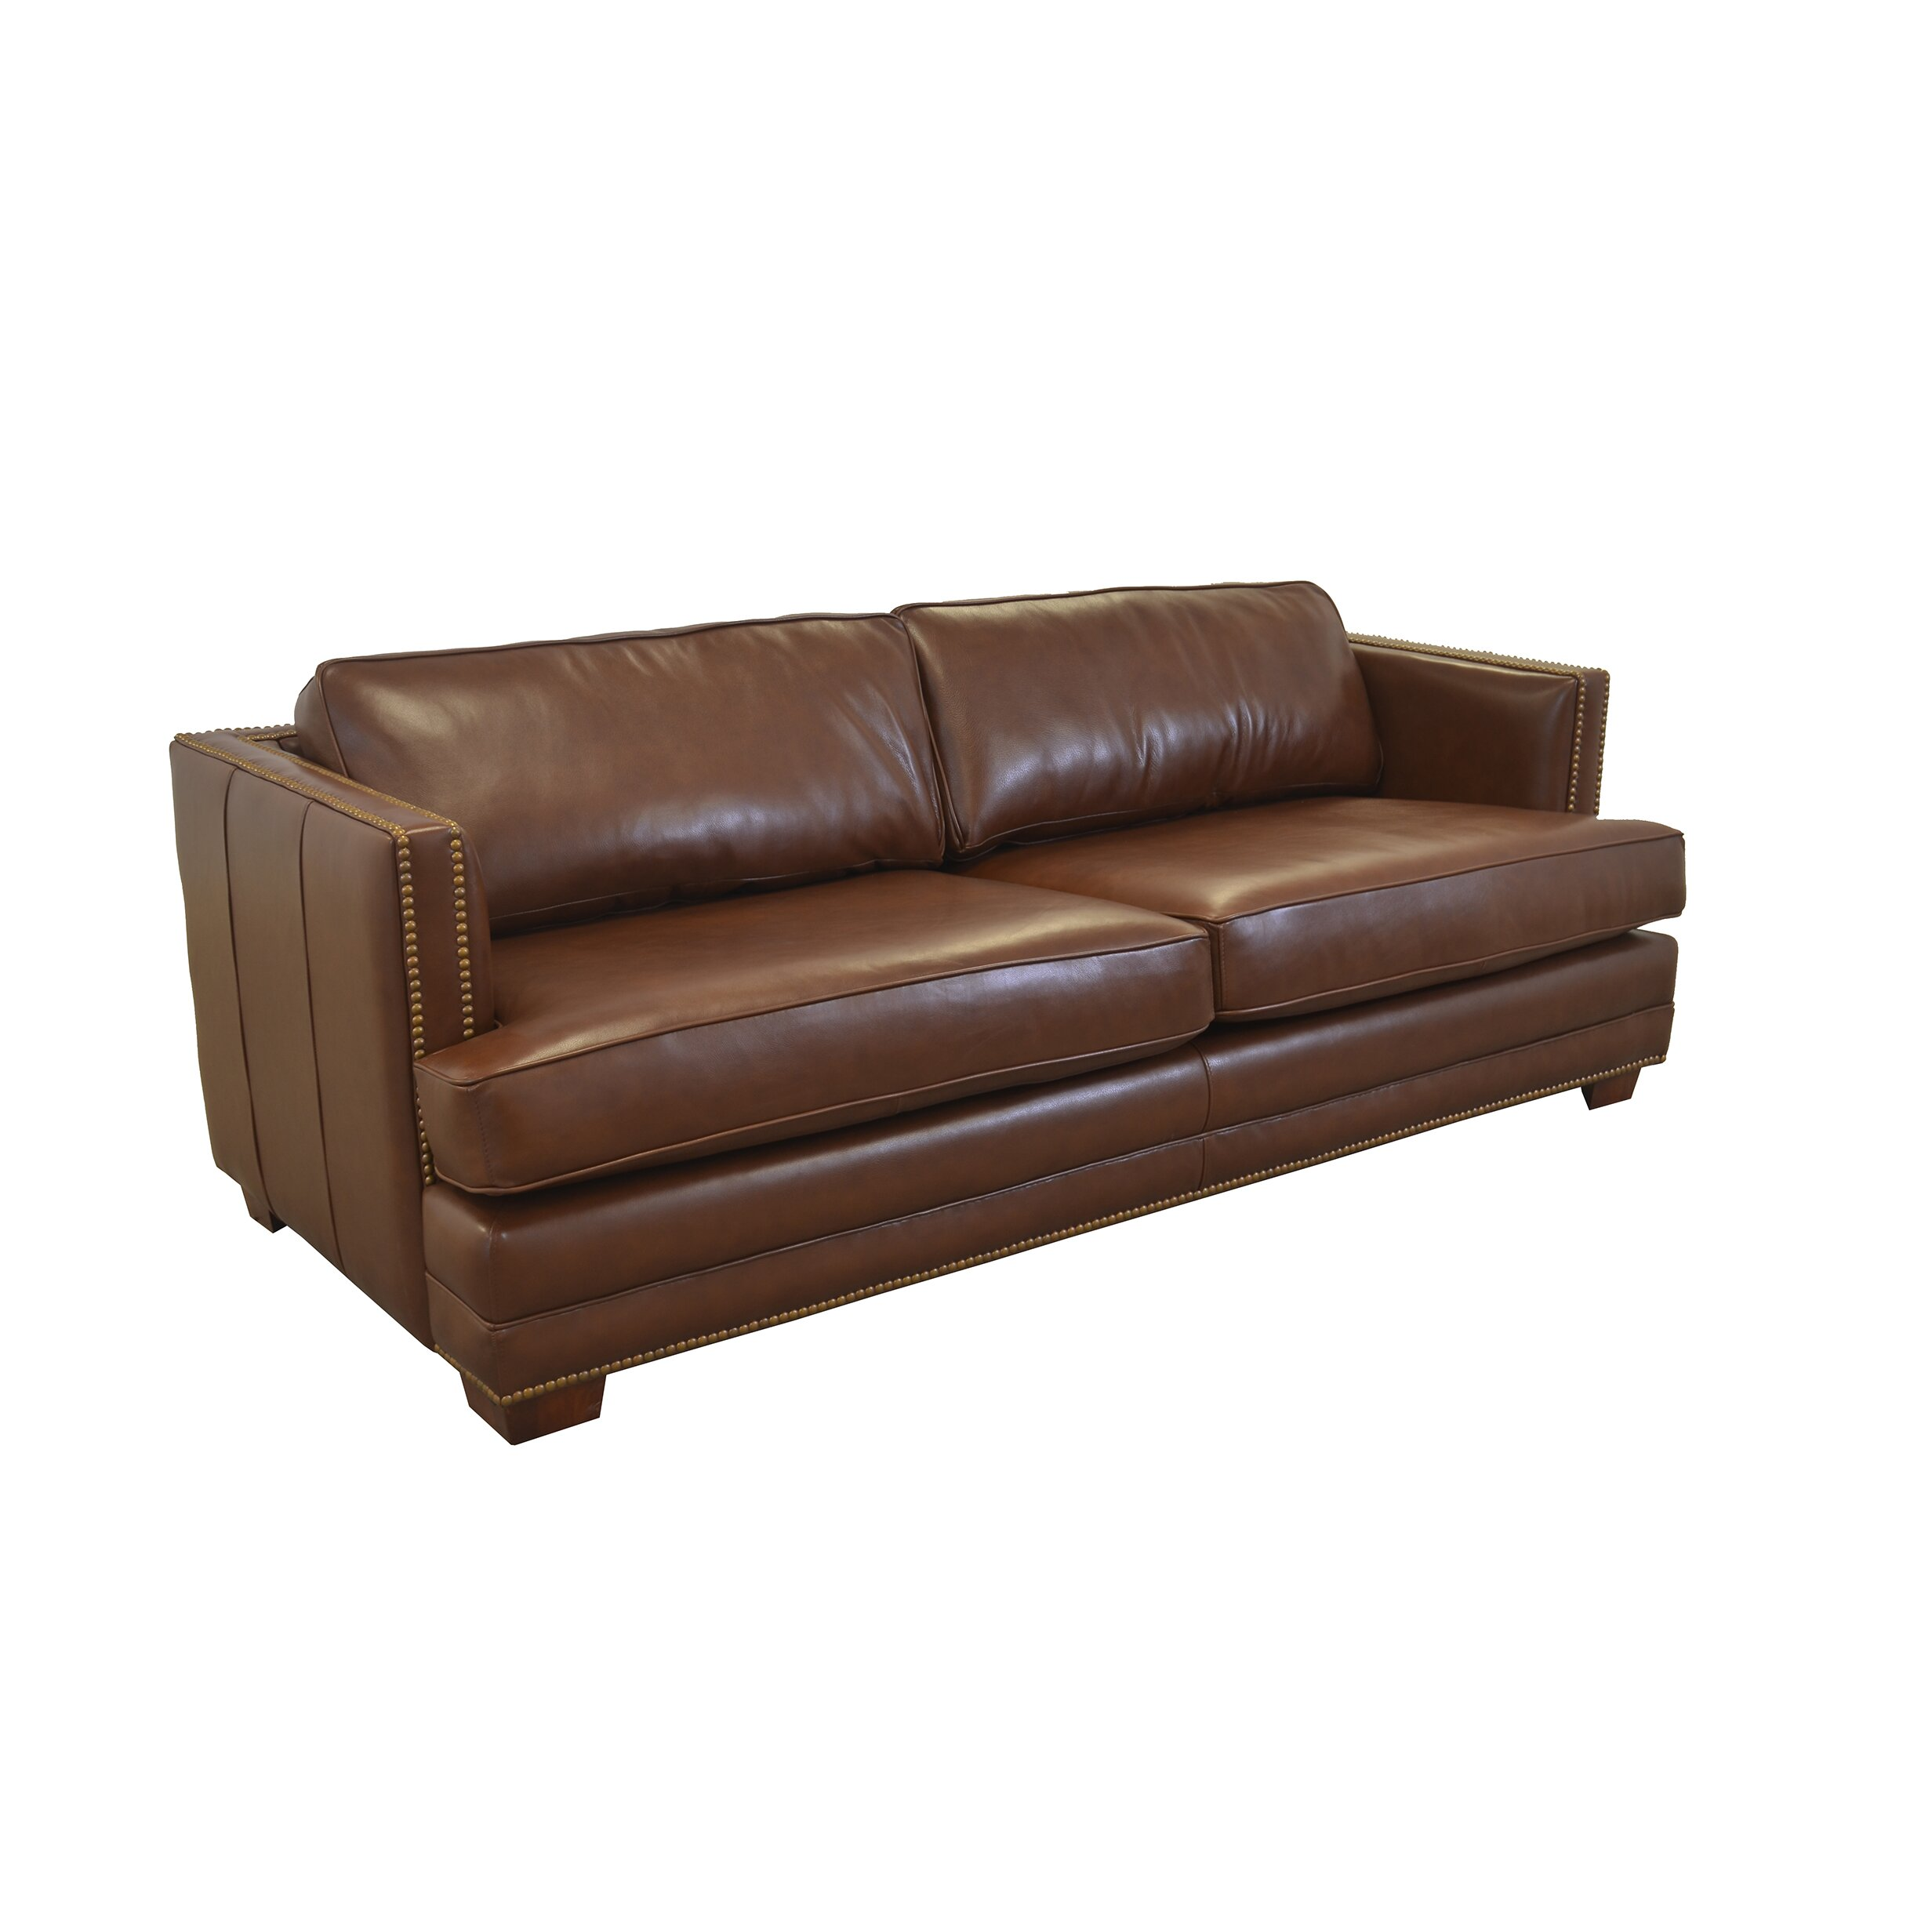 Westland And Birch Millbury Genuine Top Grain Leather Sofa